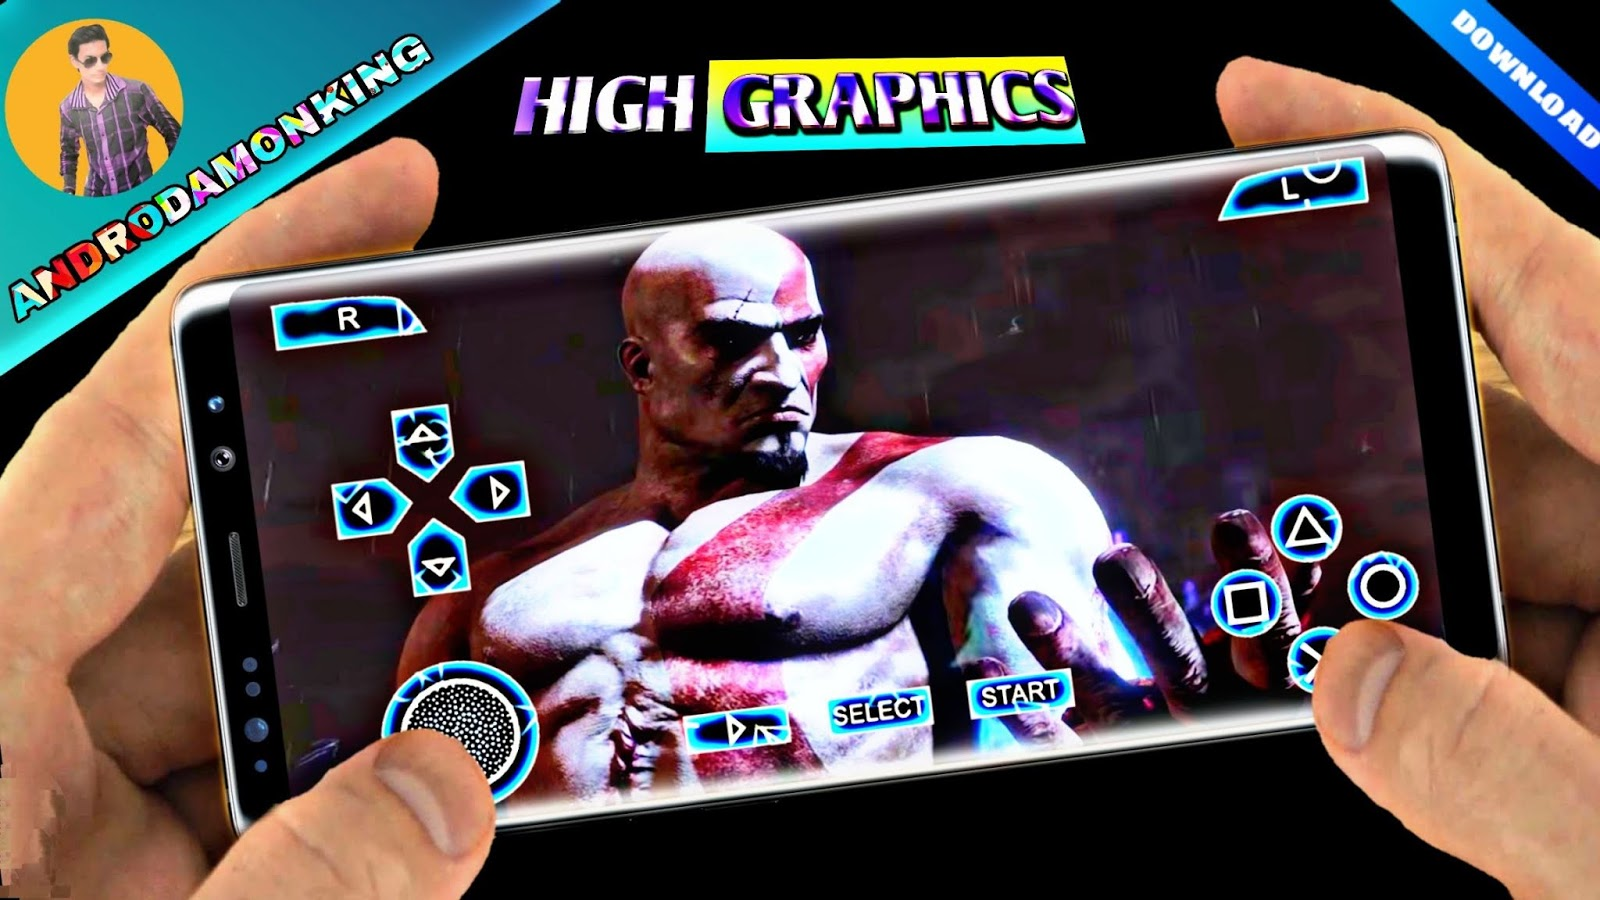 Ps2 Games For Android Highly Compressed | Games World